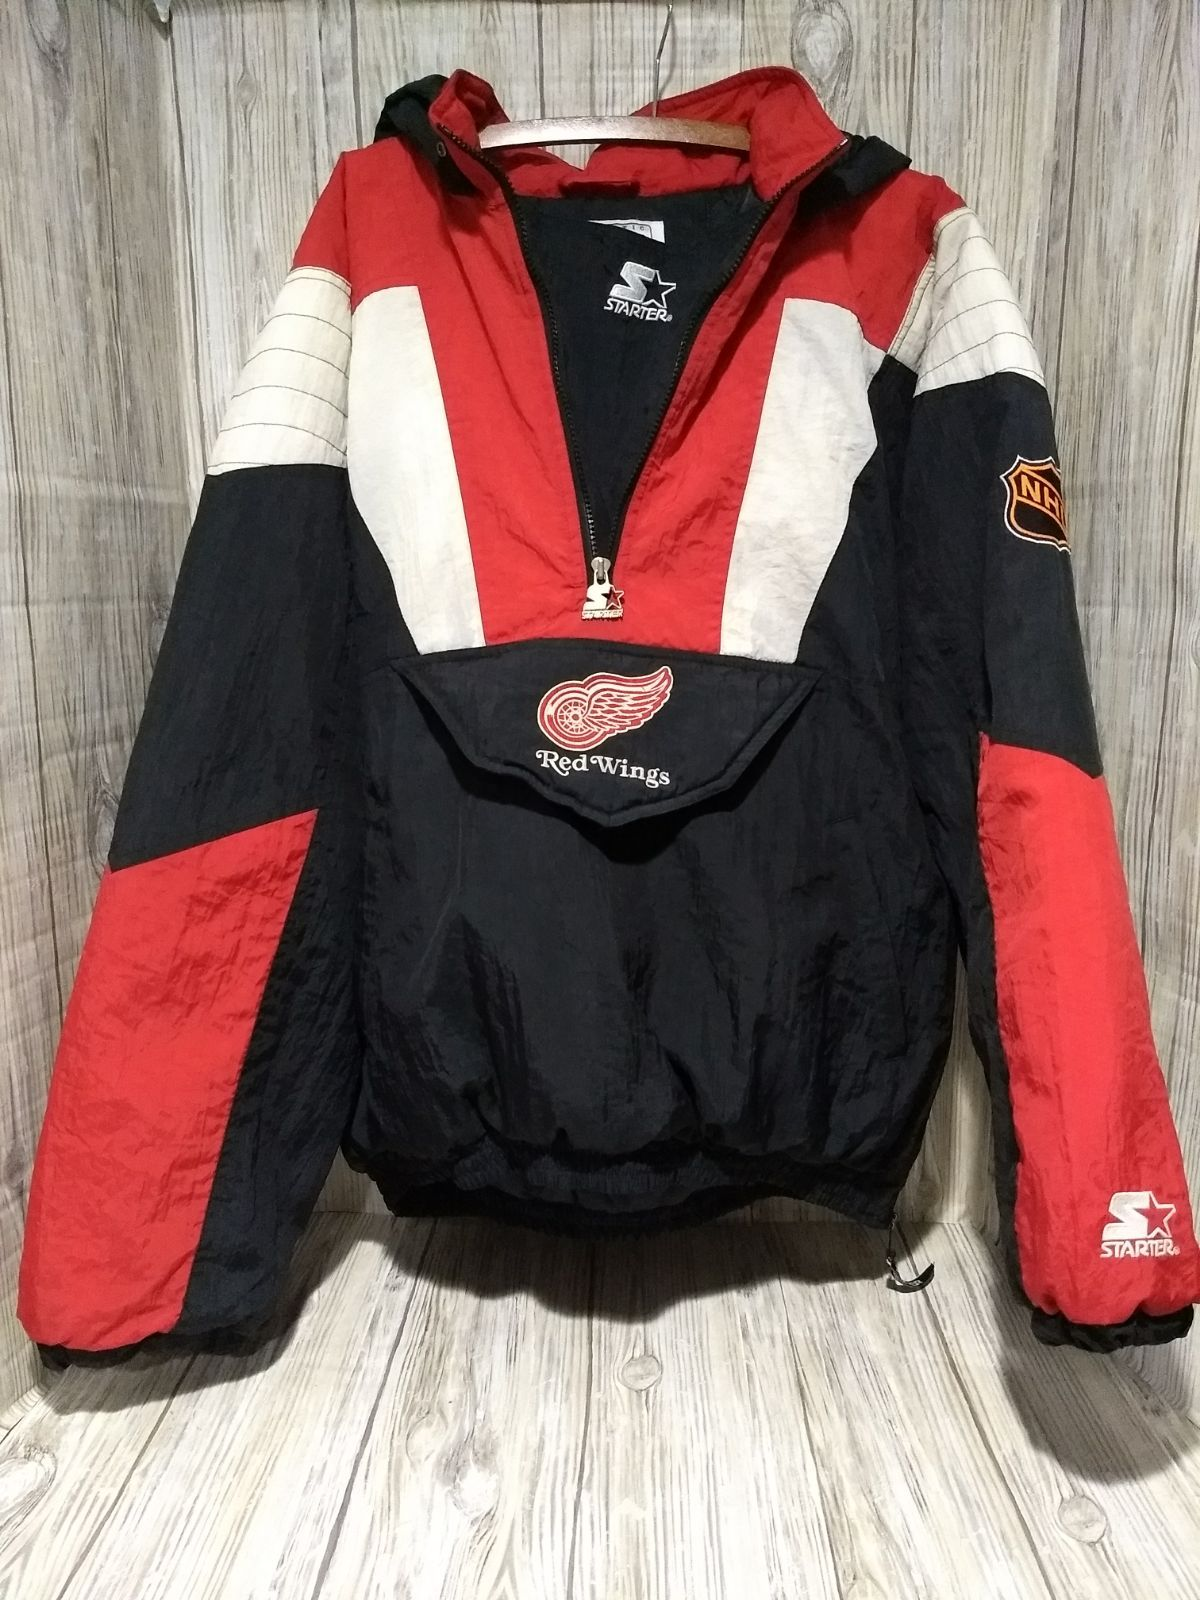 Nhl Red Wings Pullover Half Zip Starter Jacket Coat Center Ice Collection Mens Xl Preloved Normal Wear And One Flaw Pictured A Nhl Red Wings Jackets Zip Coat